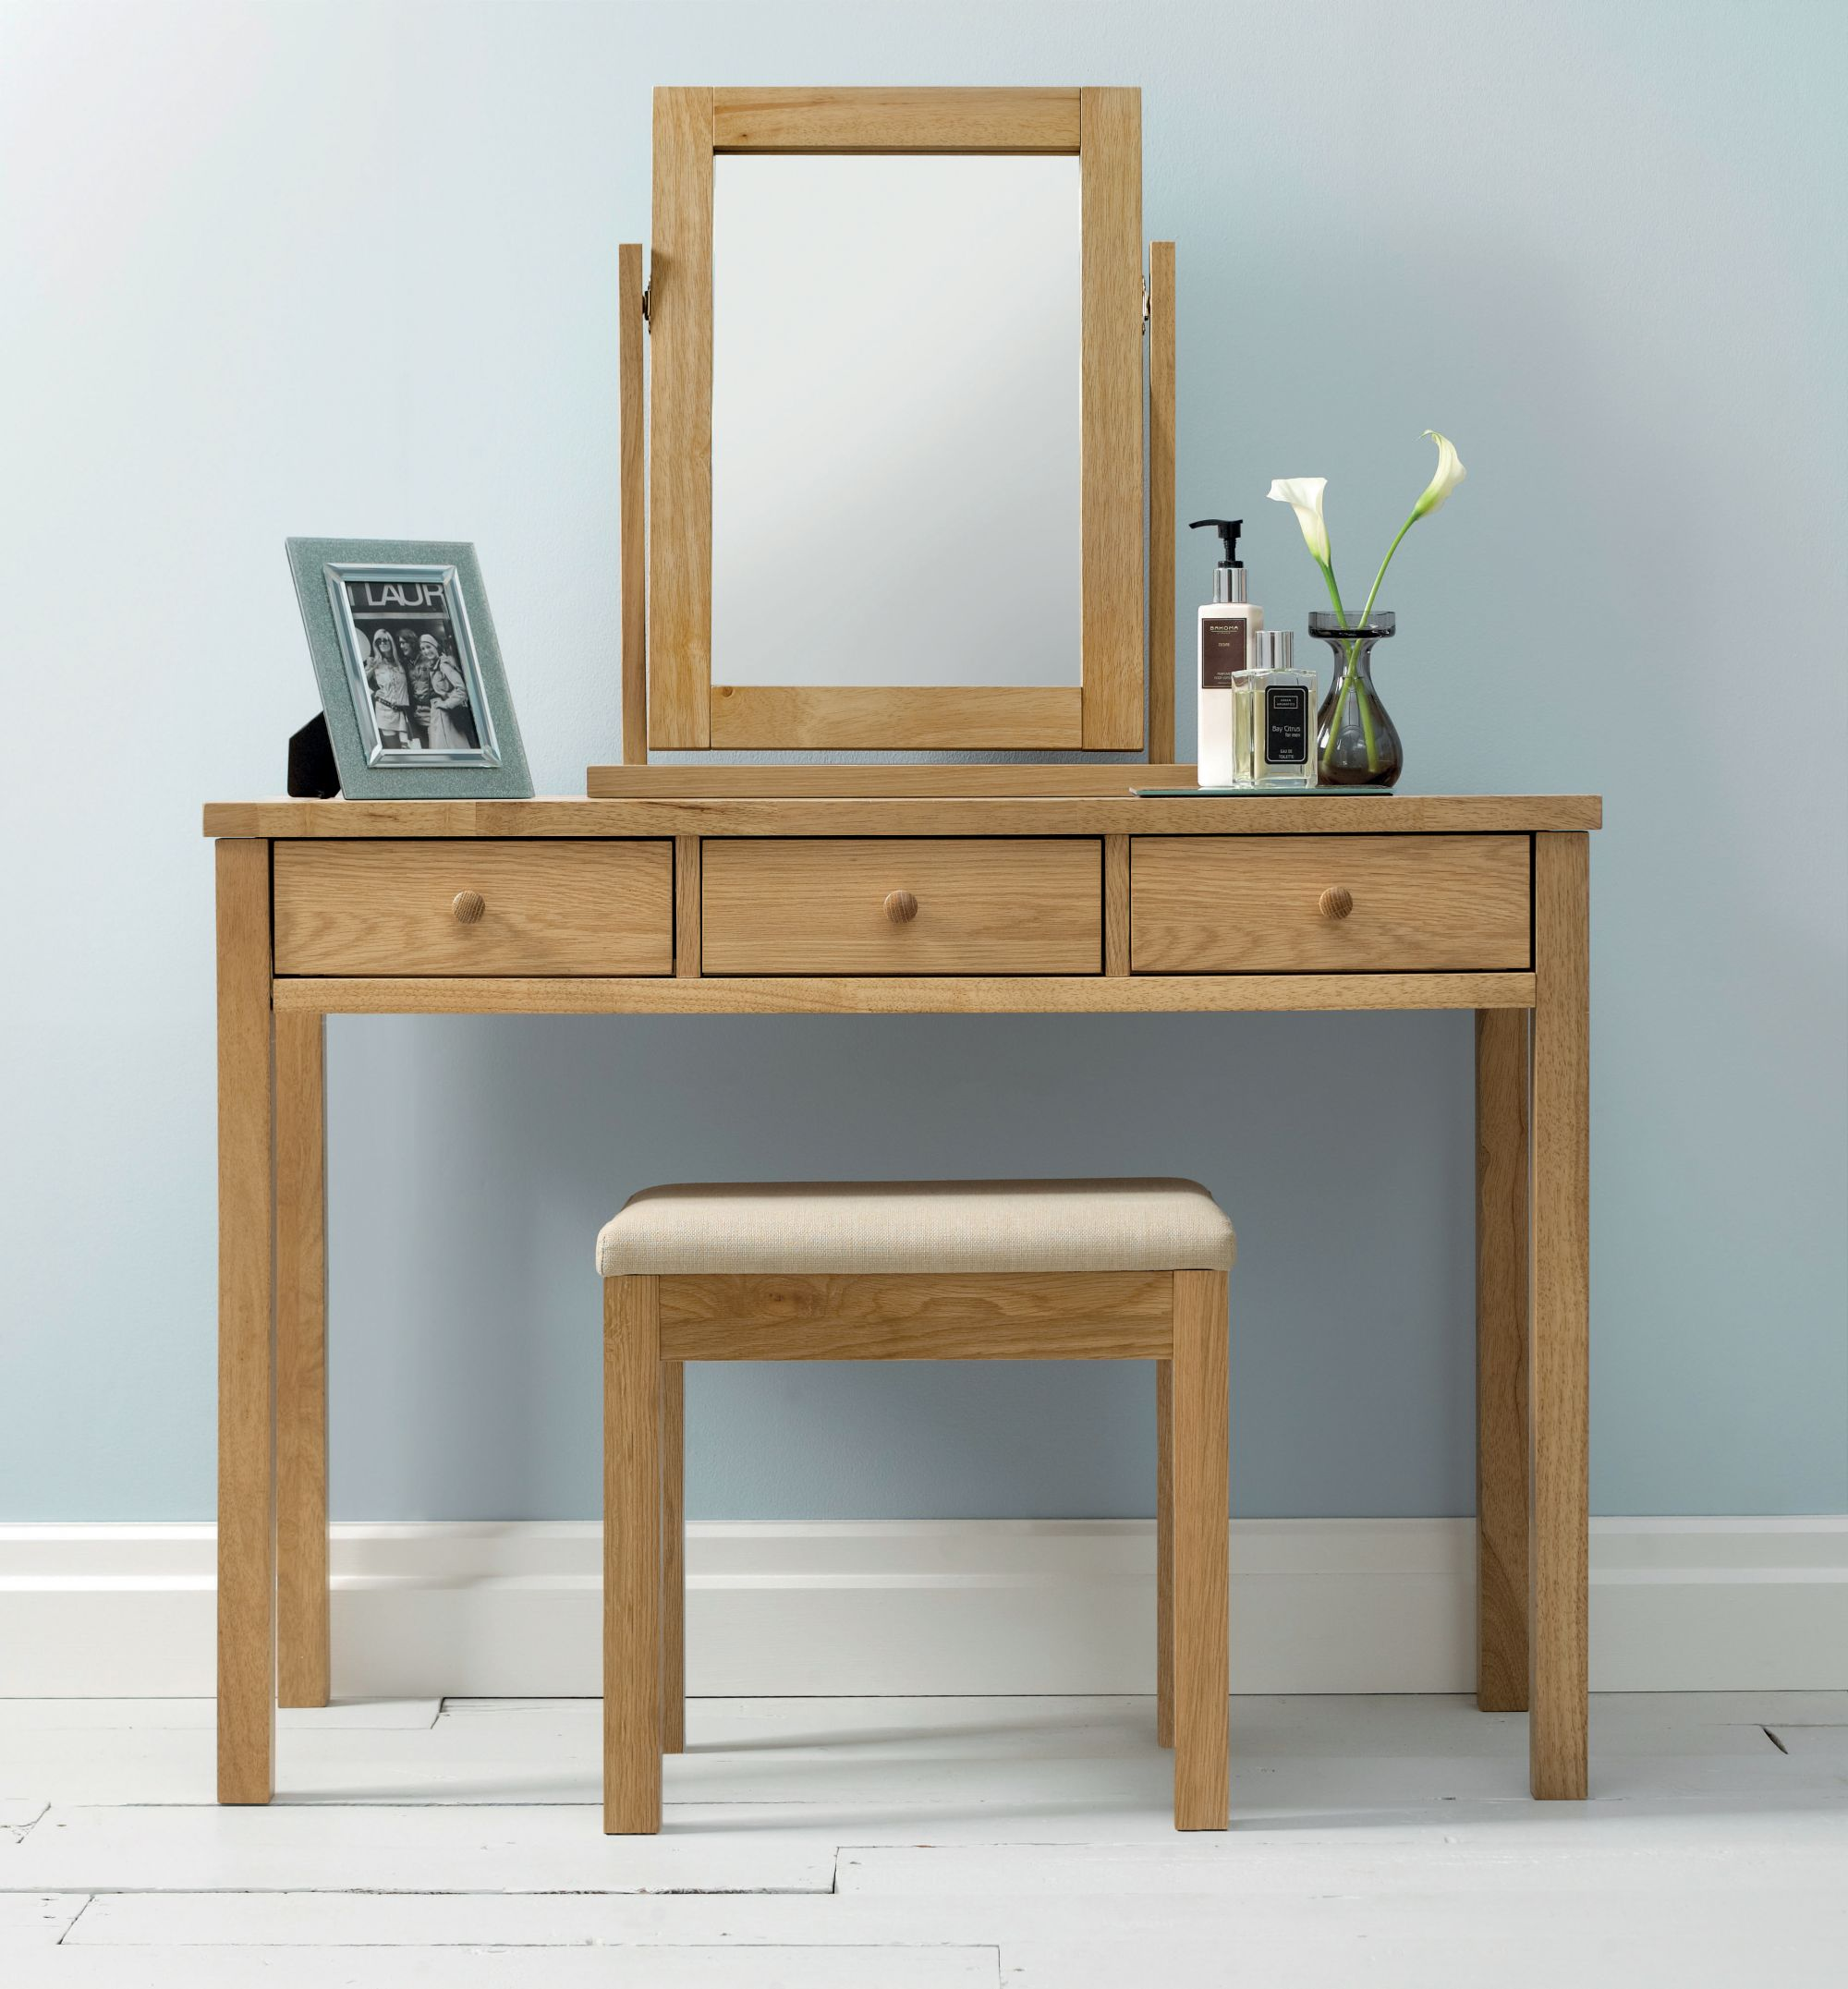 Furniture Bentley Designs Atlanta Oak Dressing Table,How To Design Stickers In Photoshop